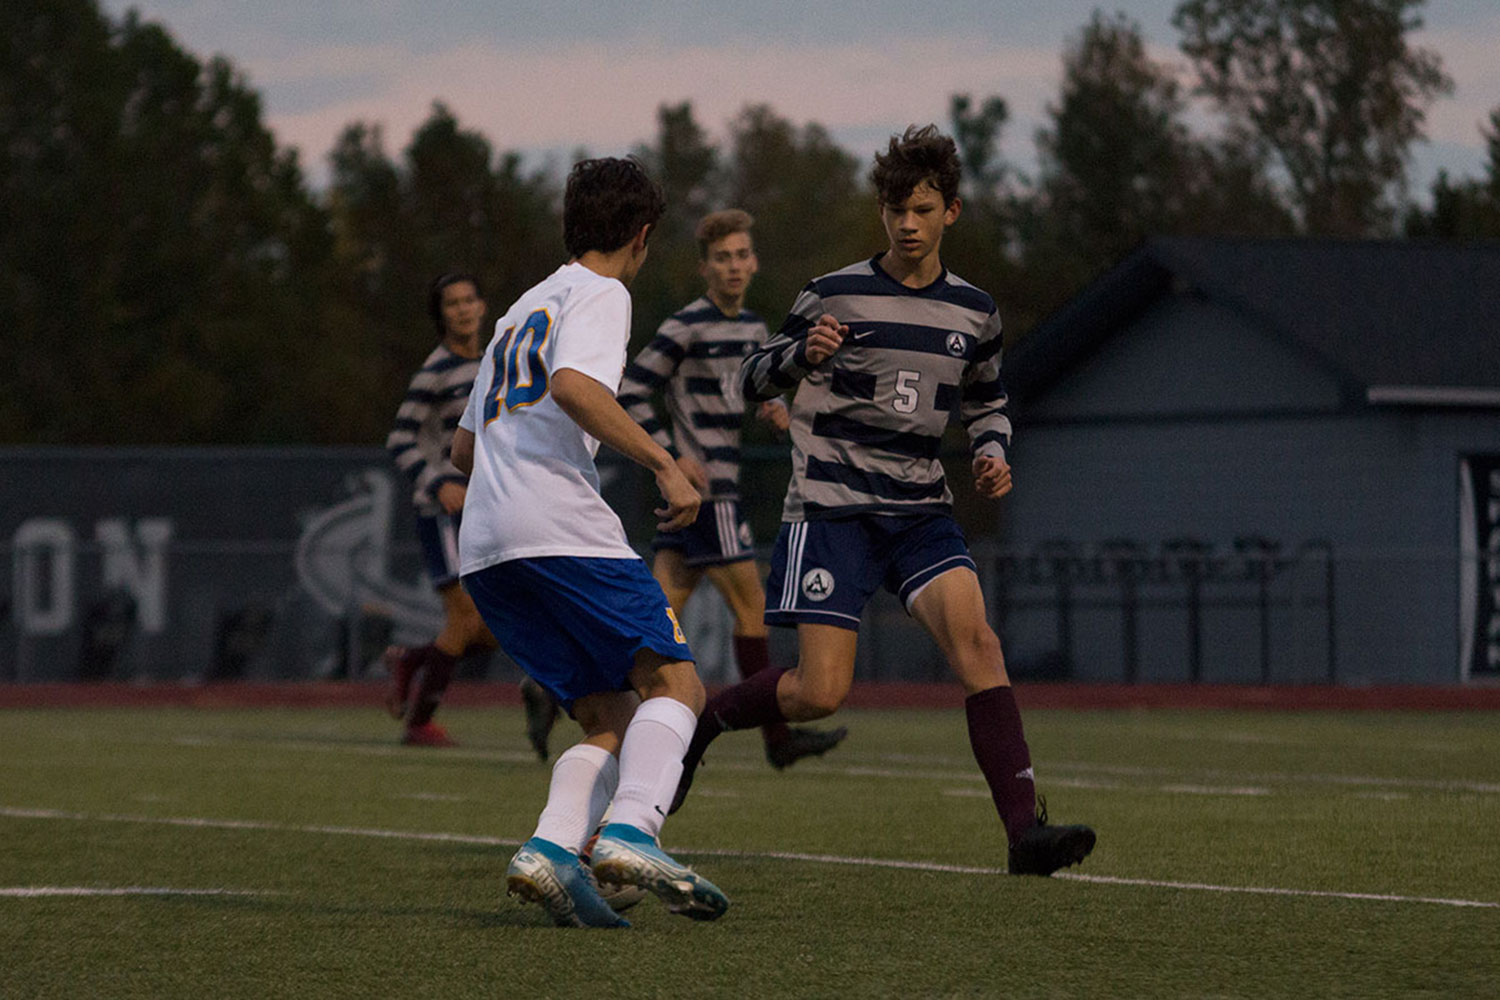 Junior Luke Fisher battles an apposing player from Francis Howell for the ball in last Tuesdays game. Only to lead to a 2-0 defeat.